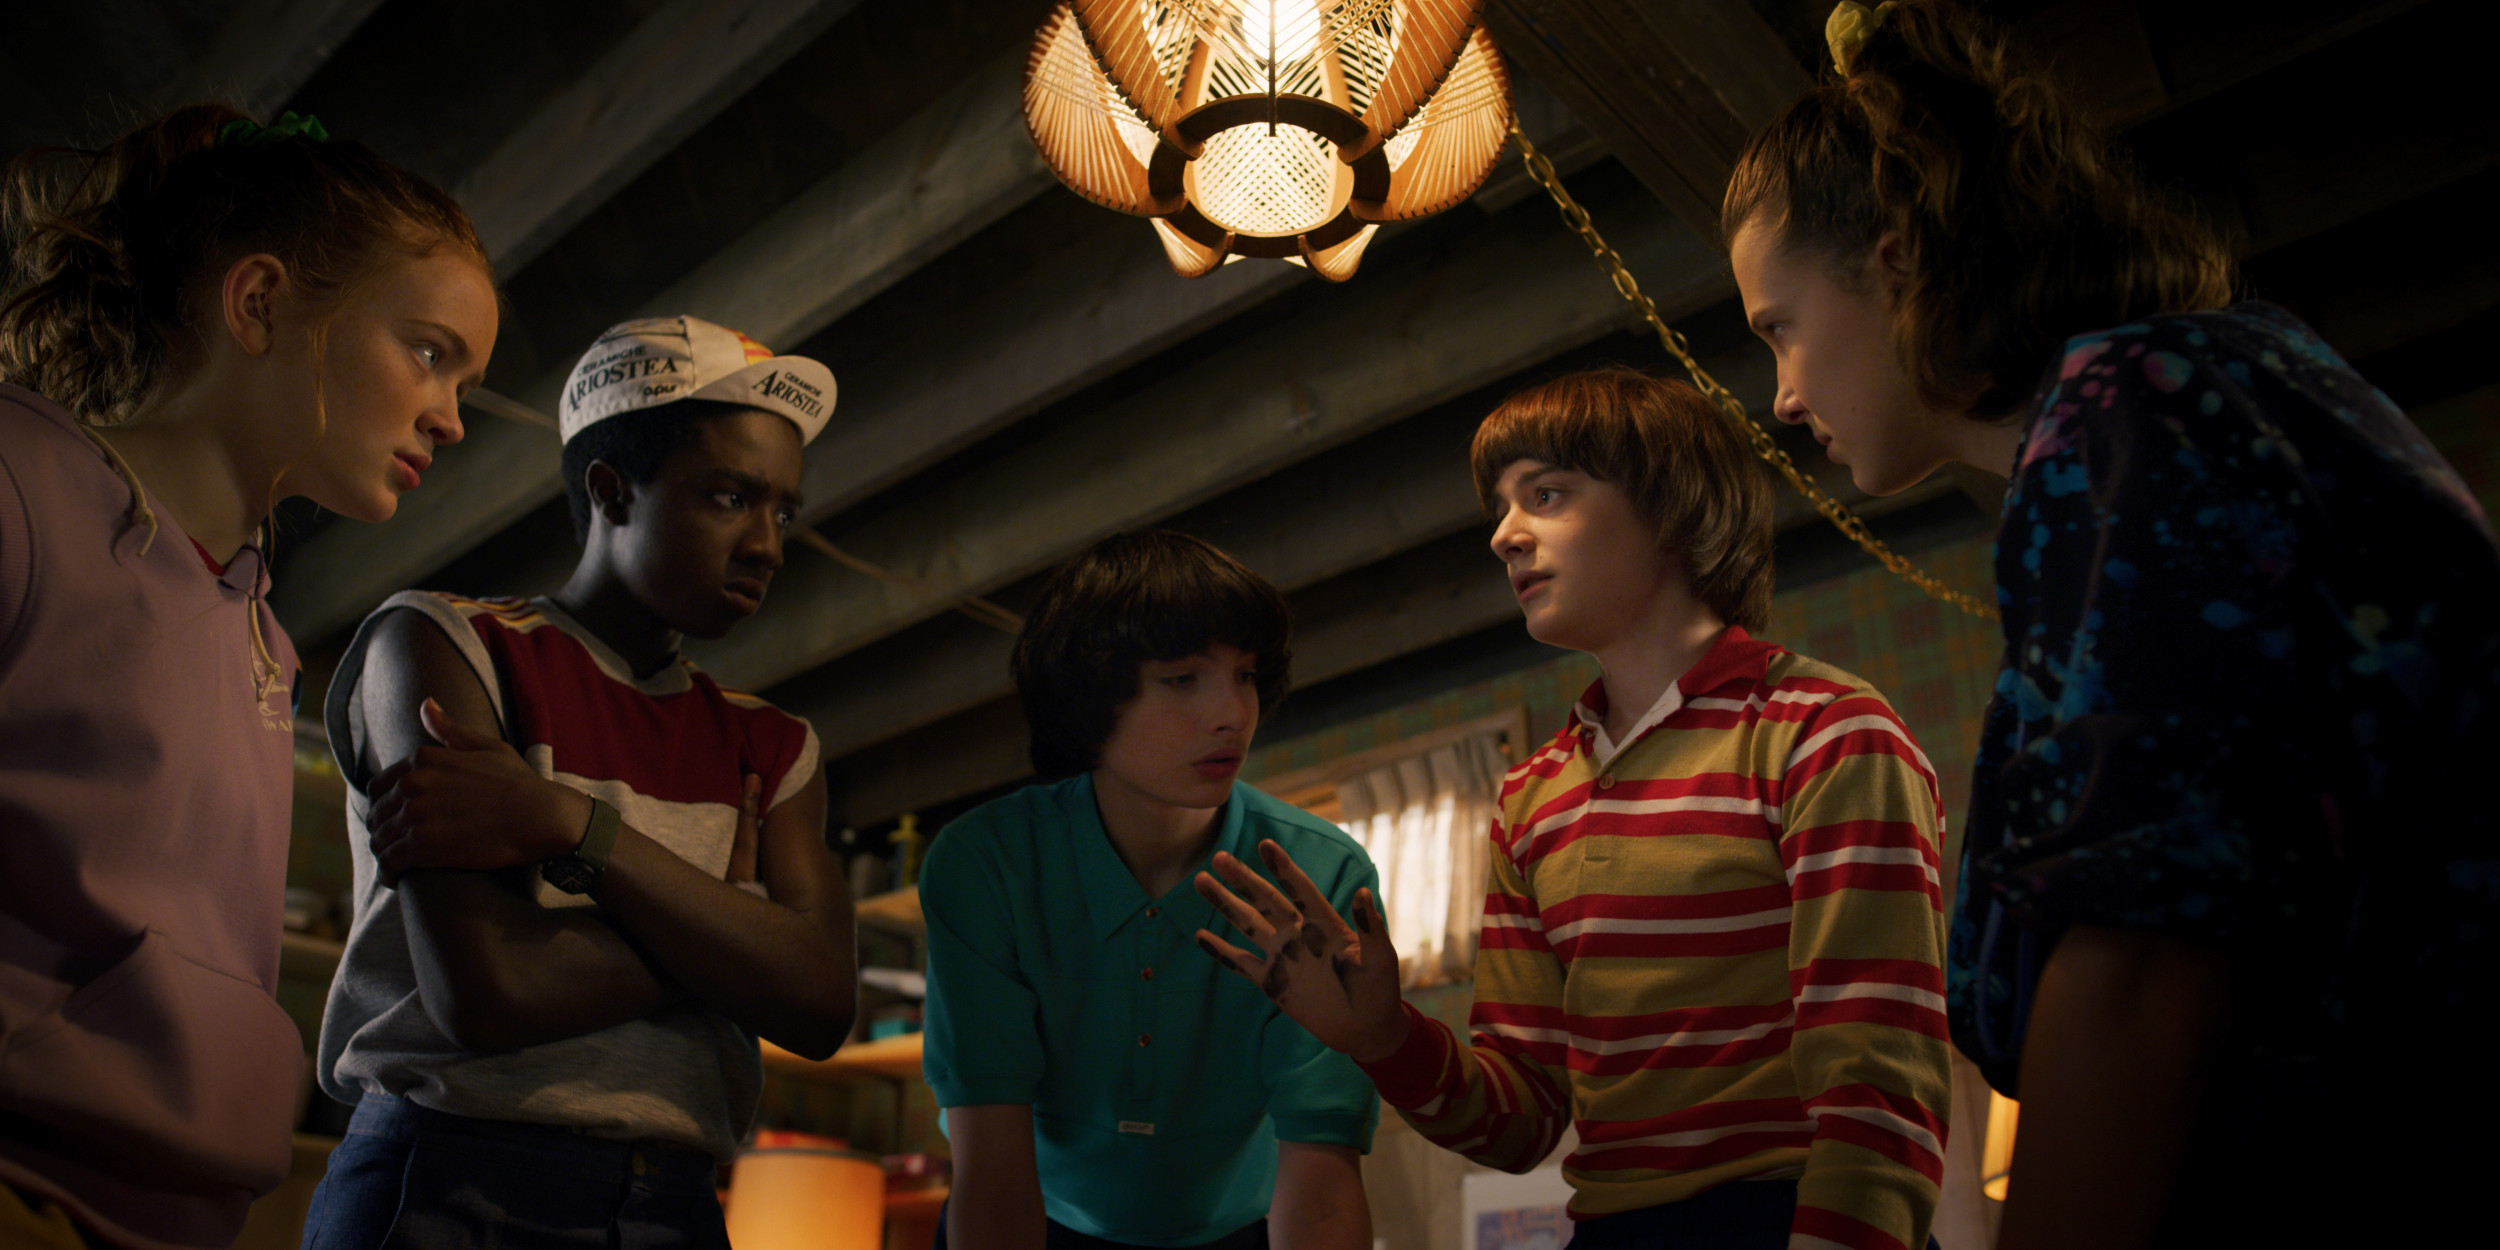 Will There Be a 'Stranger Things' Season 4? Everything We